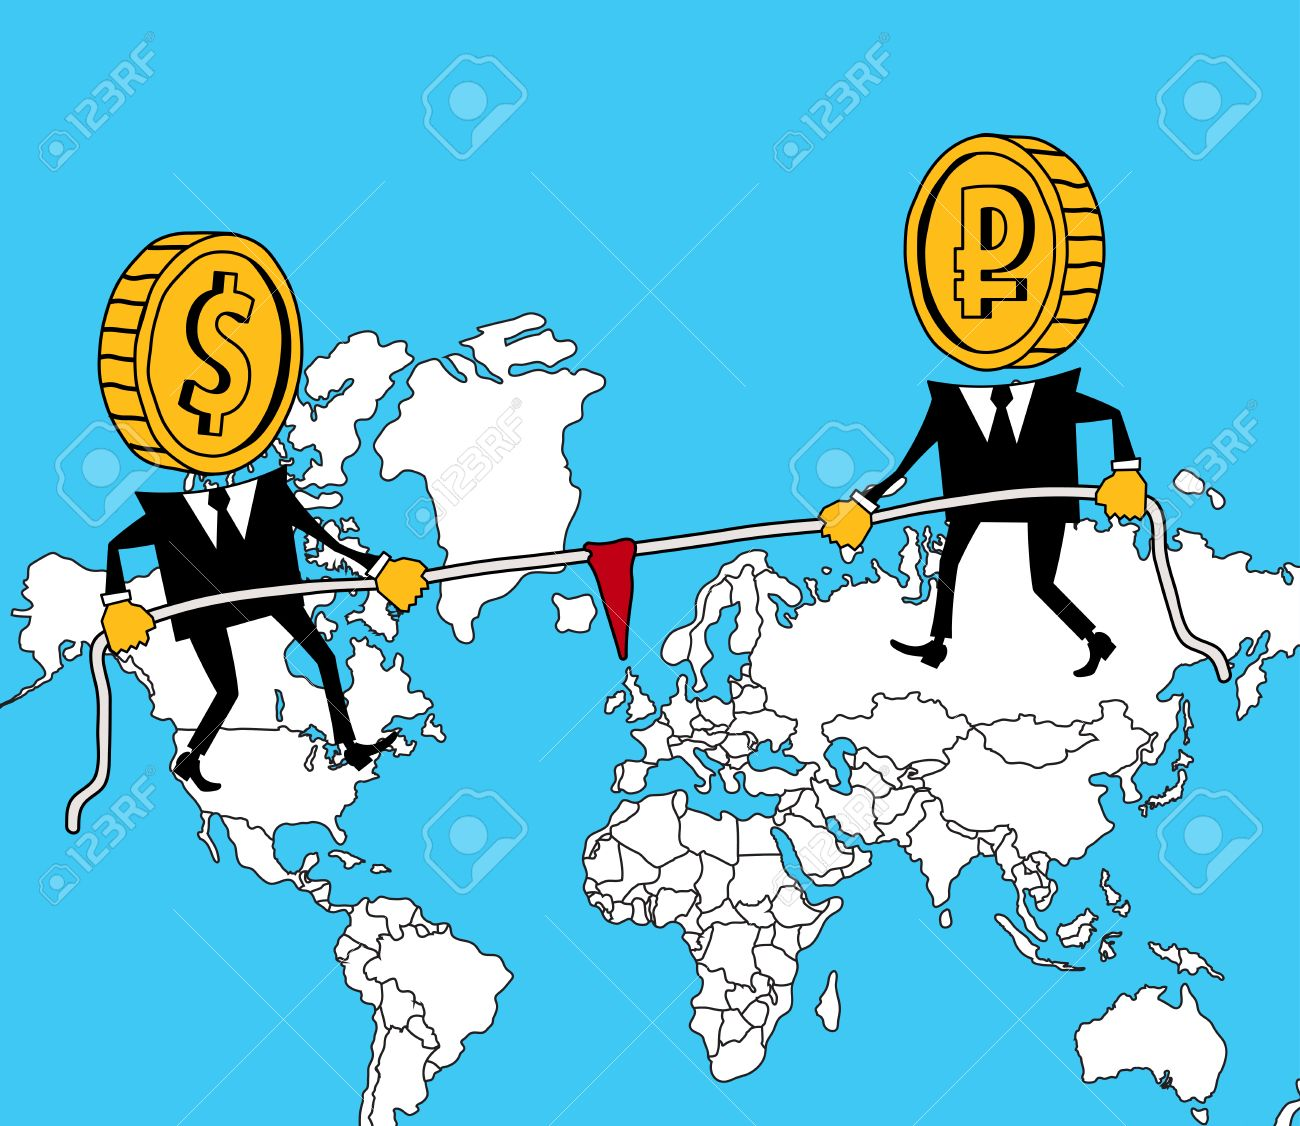 Russia and america pull the rope on world map royalty free cliparts russia and america pull the rope on world map stock vector 27383185 gumiabroncs Image collections